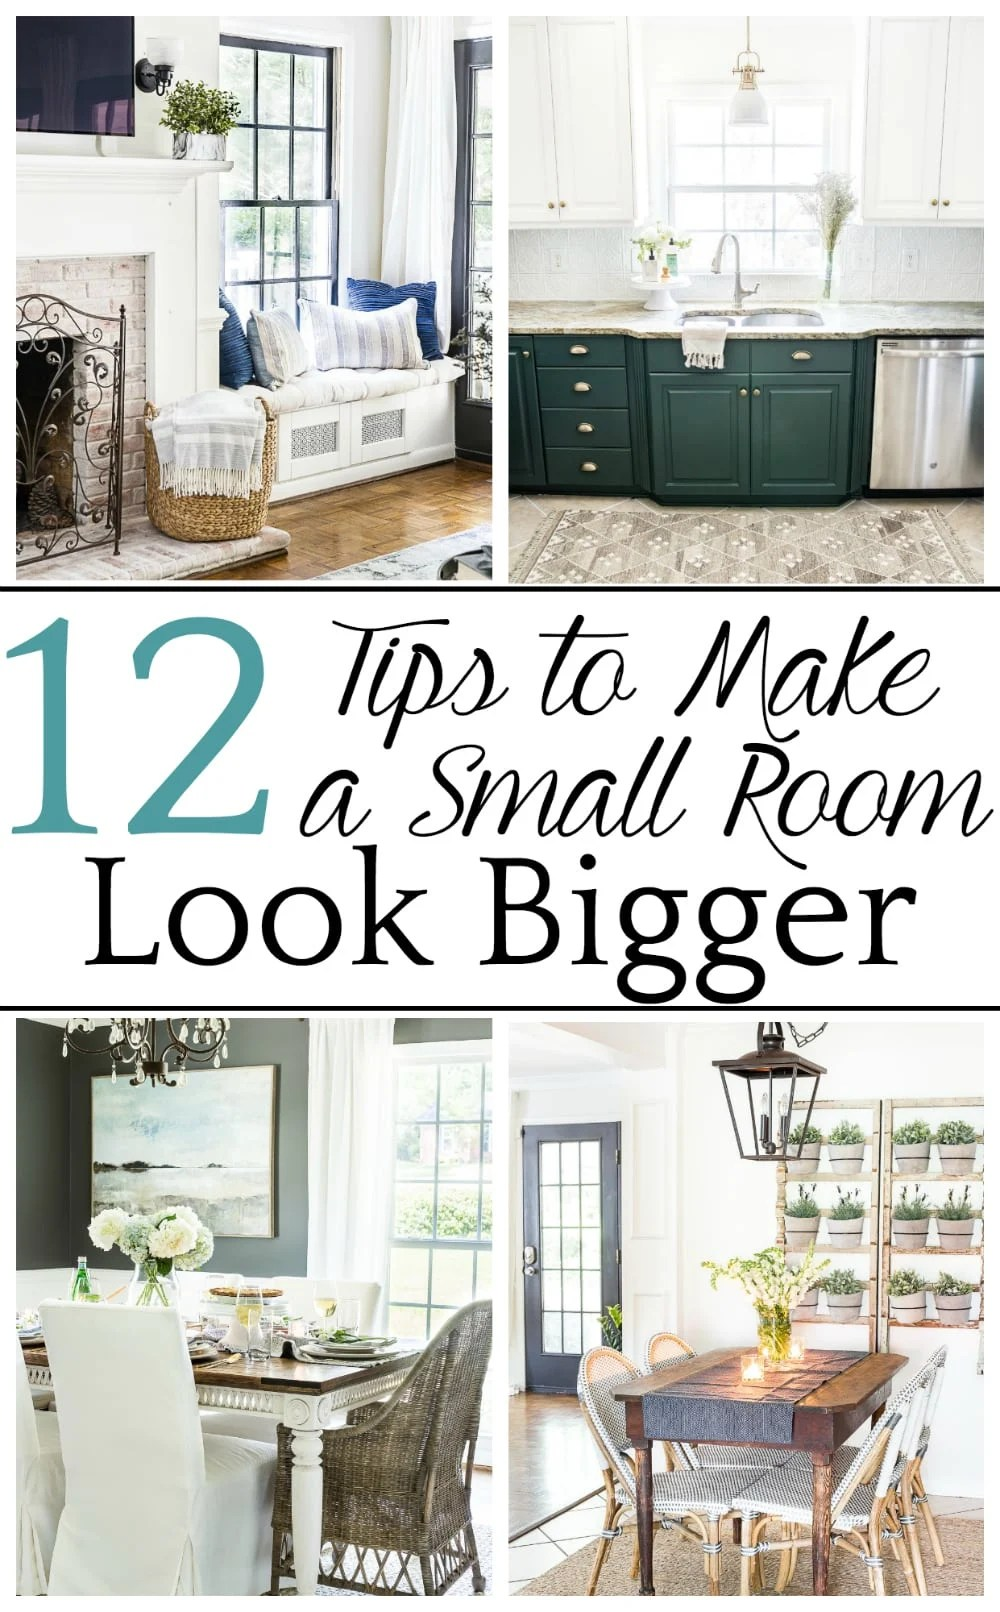 How To Make A Small Room Look Bigger Bless Er House,Kitchenaid Dishwasher Installation Manual